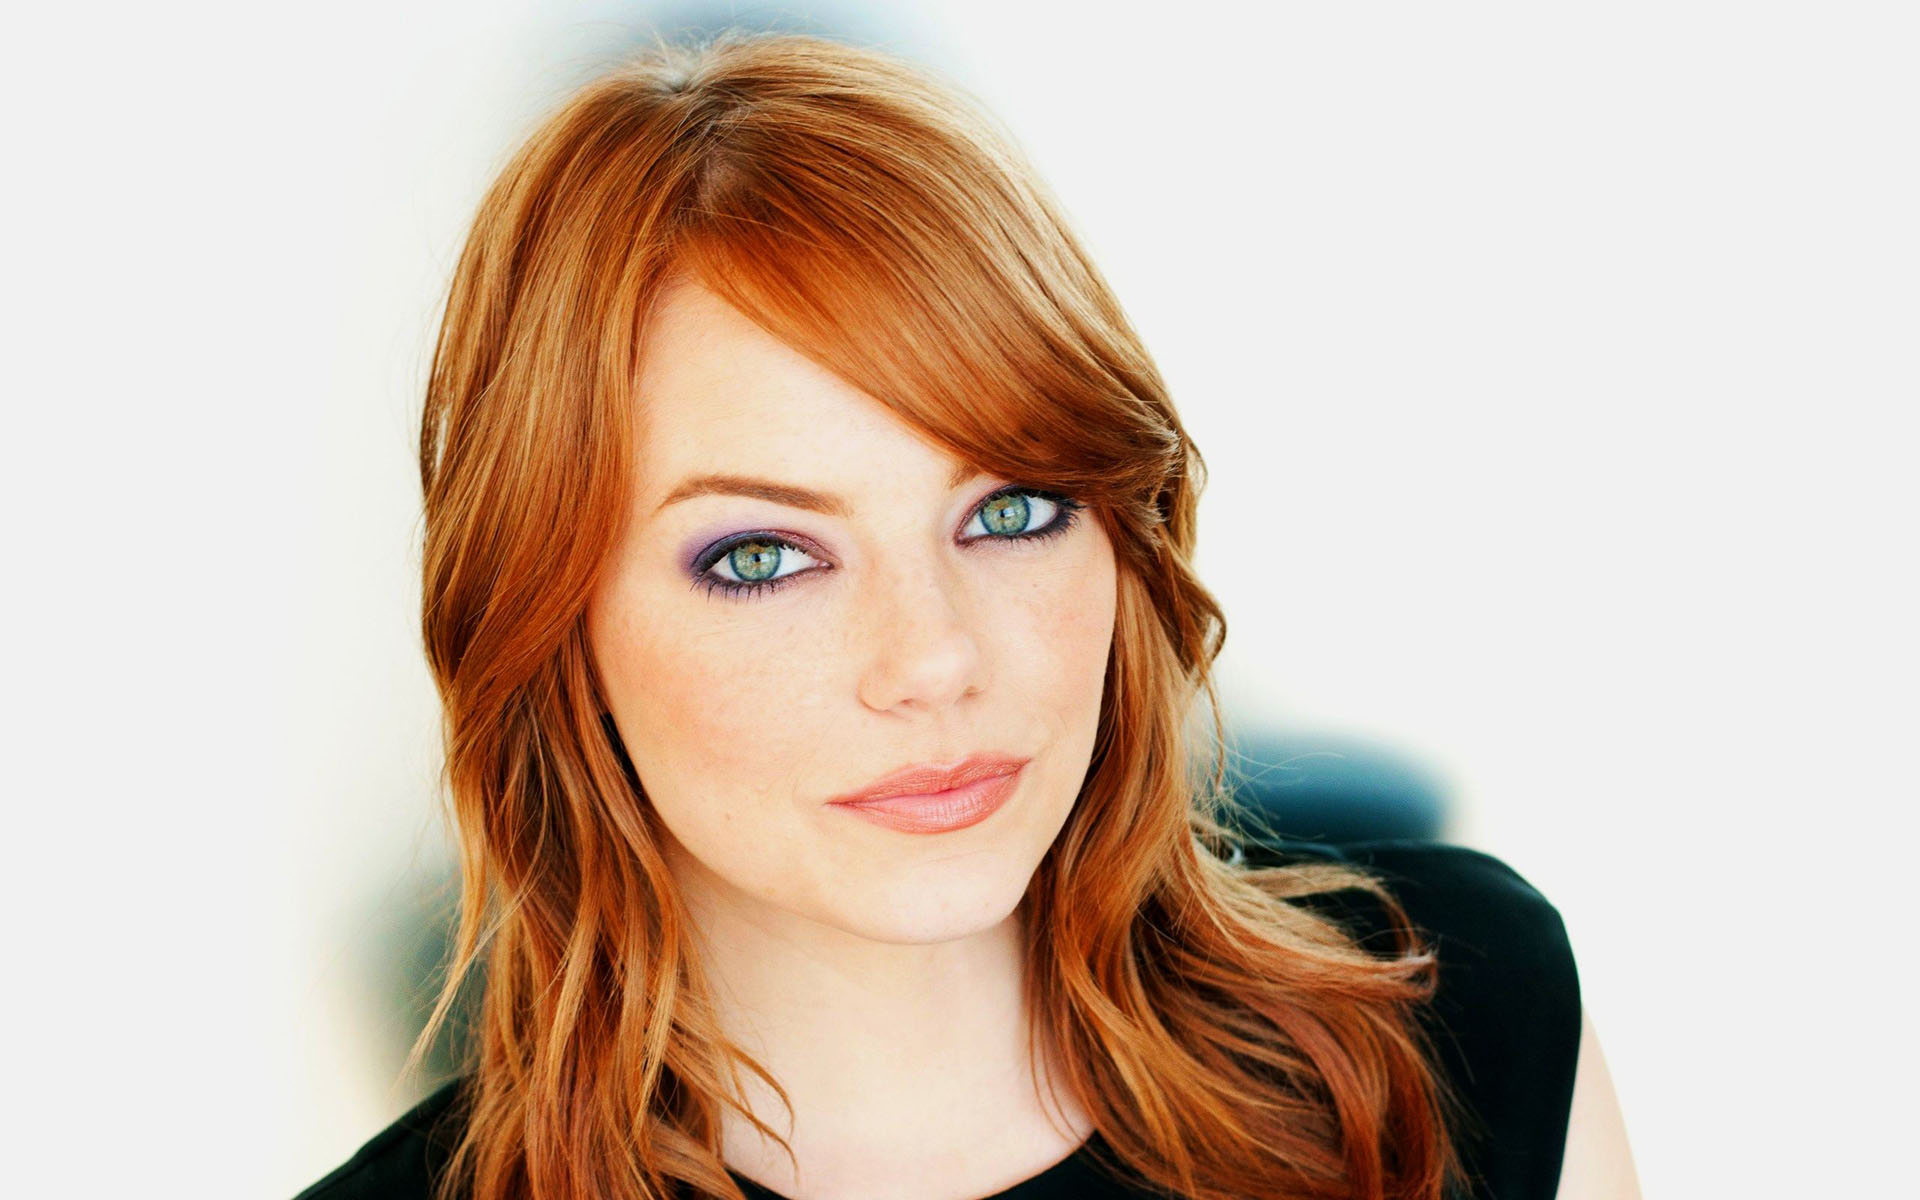 Batgirl!!! de ??? Beautyfull-emma-stone-hd-the-amazing-spider-man-3-is-this-mary-jane-watson_001